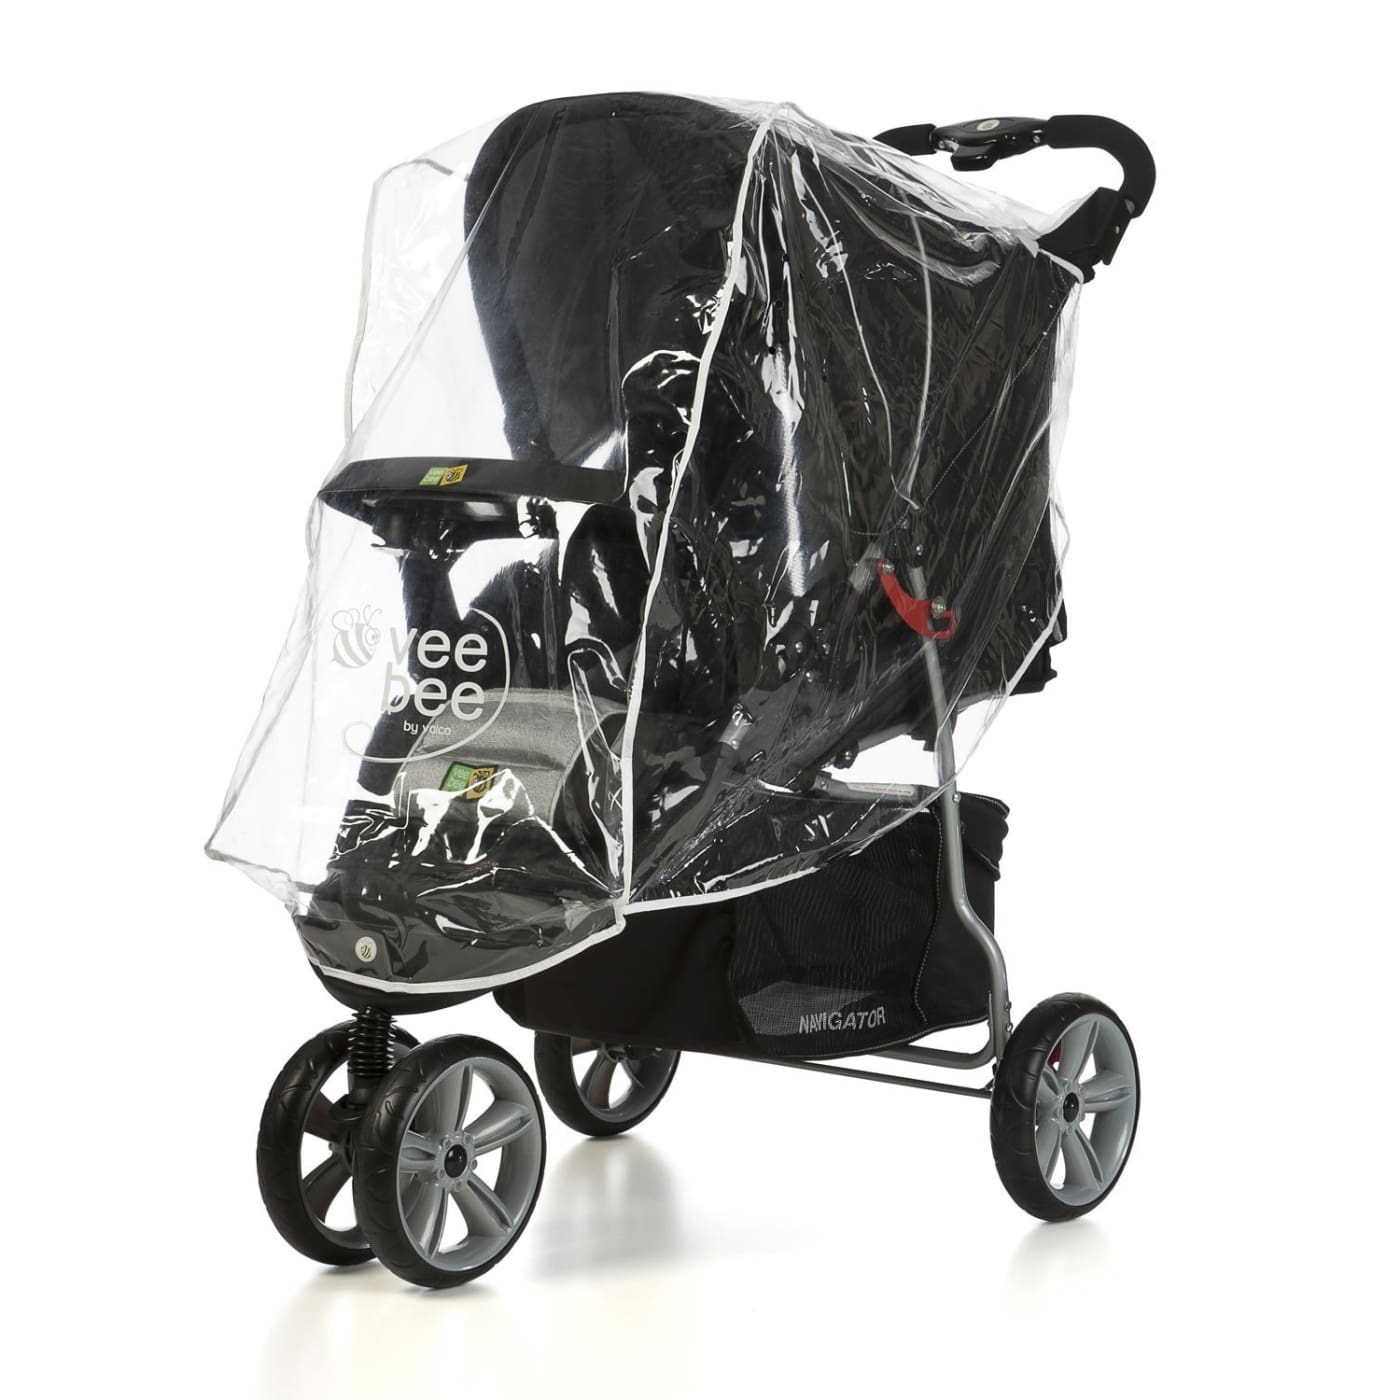 Veebee Raincover Universal 3 Wheel Raincover - PRAMS & STROLLERS - SUN COVERS/WEATHER SHIELDS